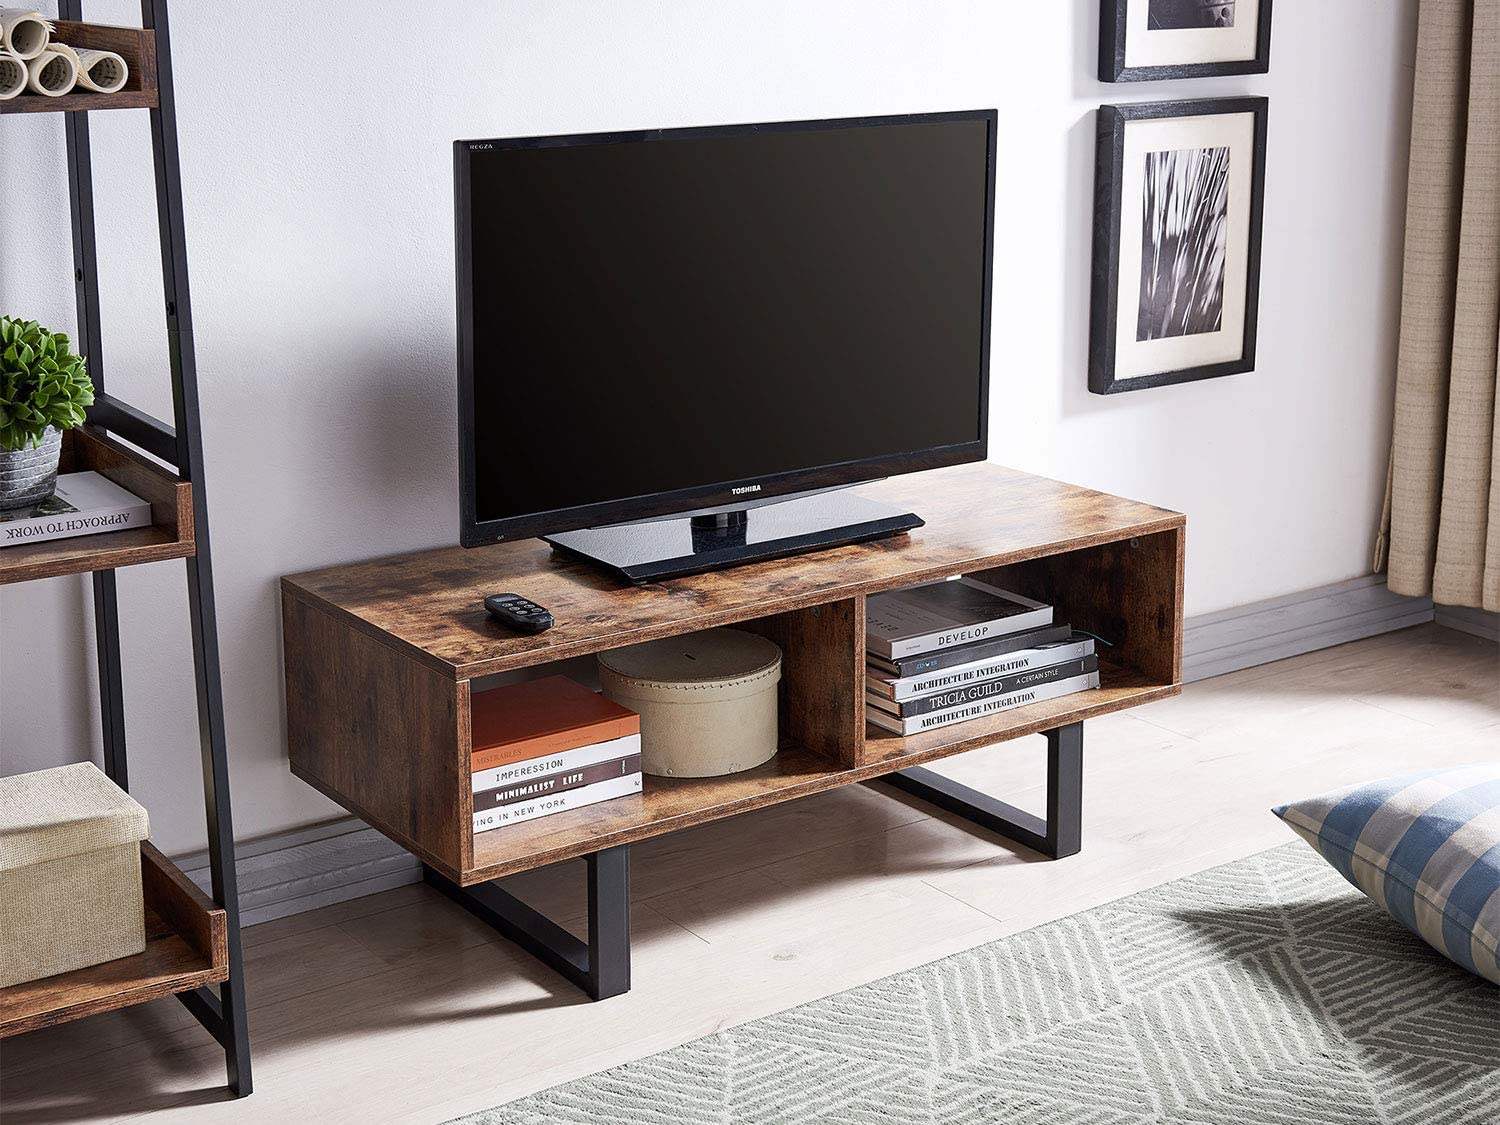 Amoak Industrial Tv Stand With Storage Shelf For Living Room Tv Console Storage Cabinet Retro Coffee Table Easy Assembly Retro Brown Kitchen Dining